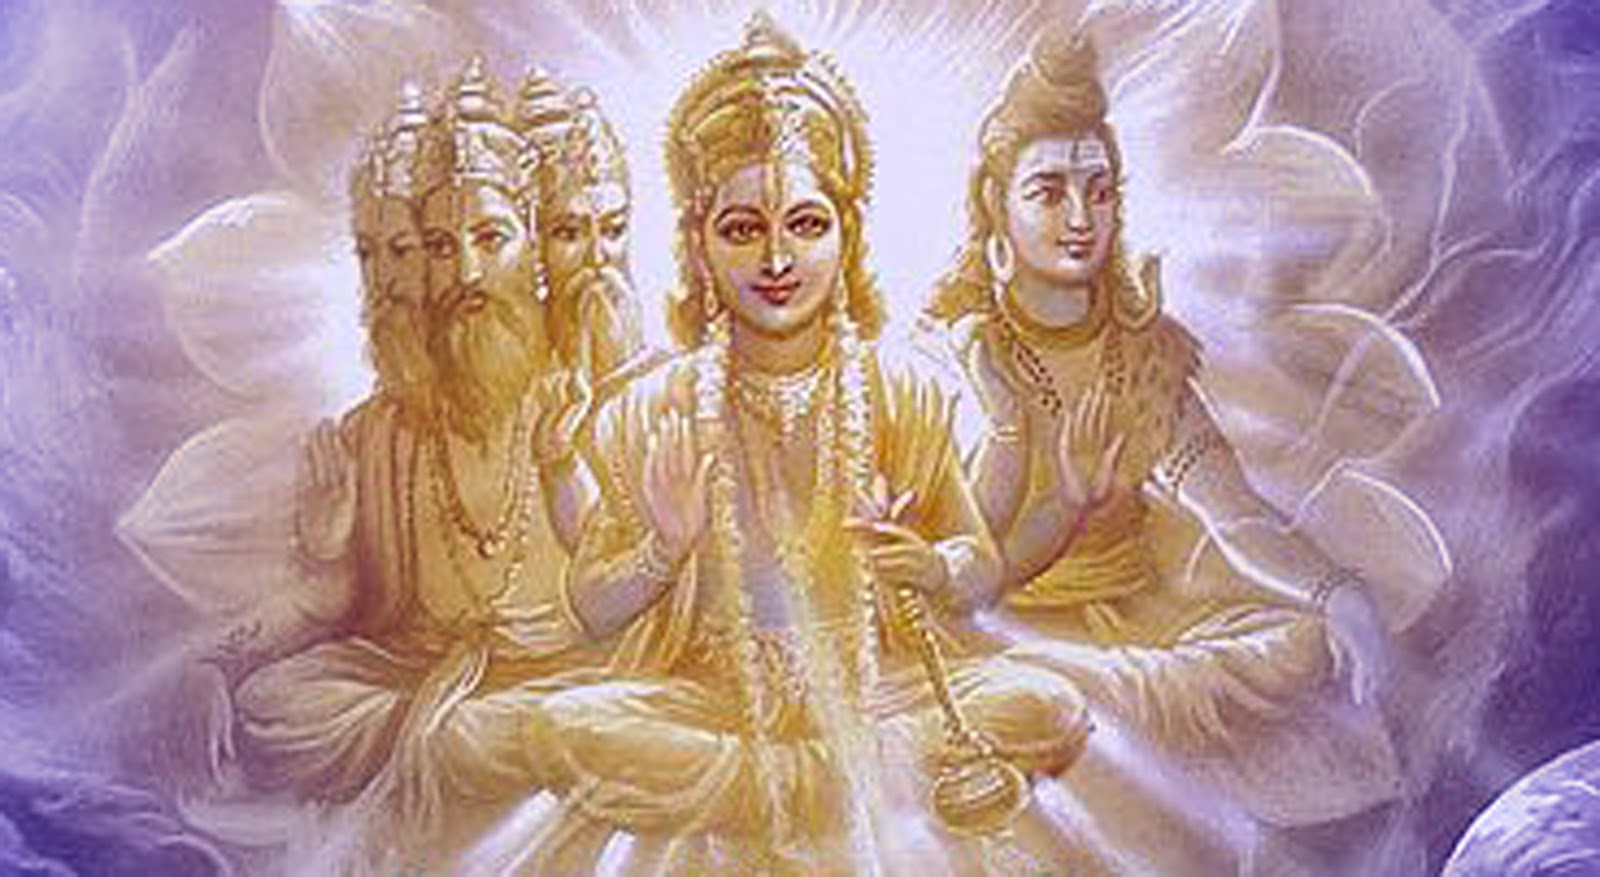 the name of Brahma, Shiva asked him why, what's the amazing truth